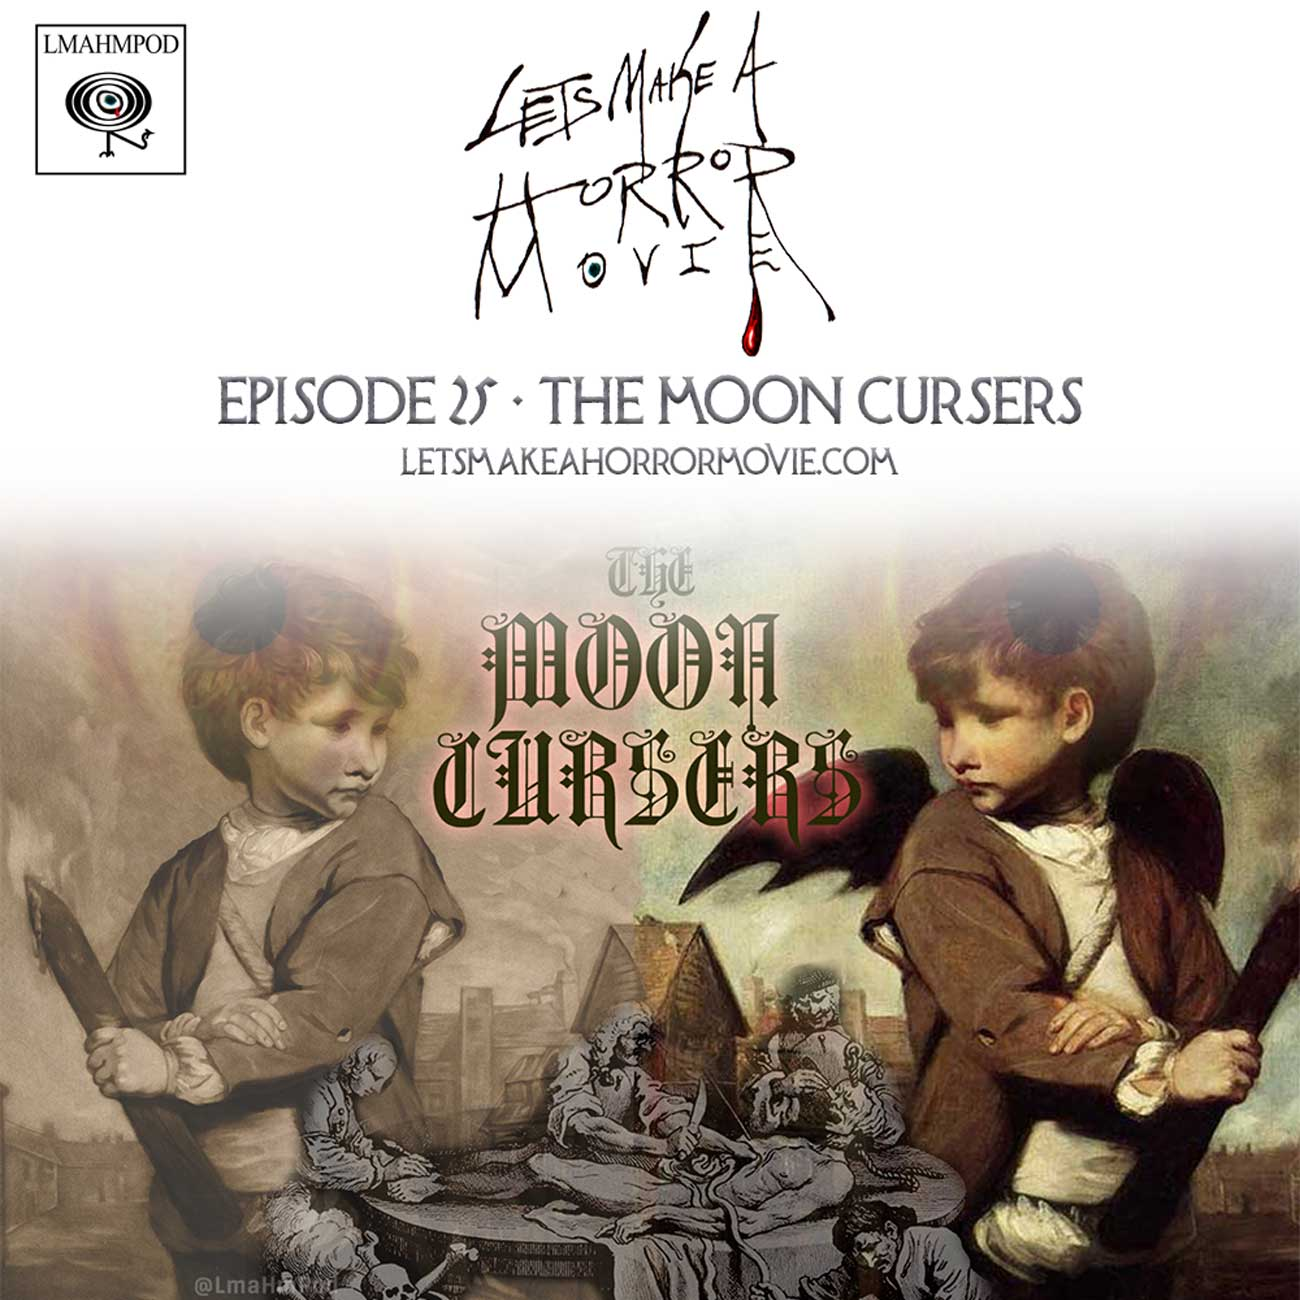 Episode 25: The Moon Cursers